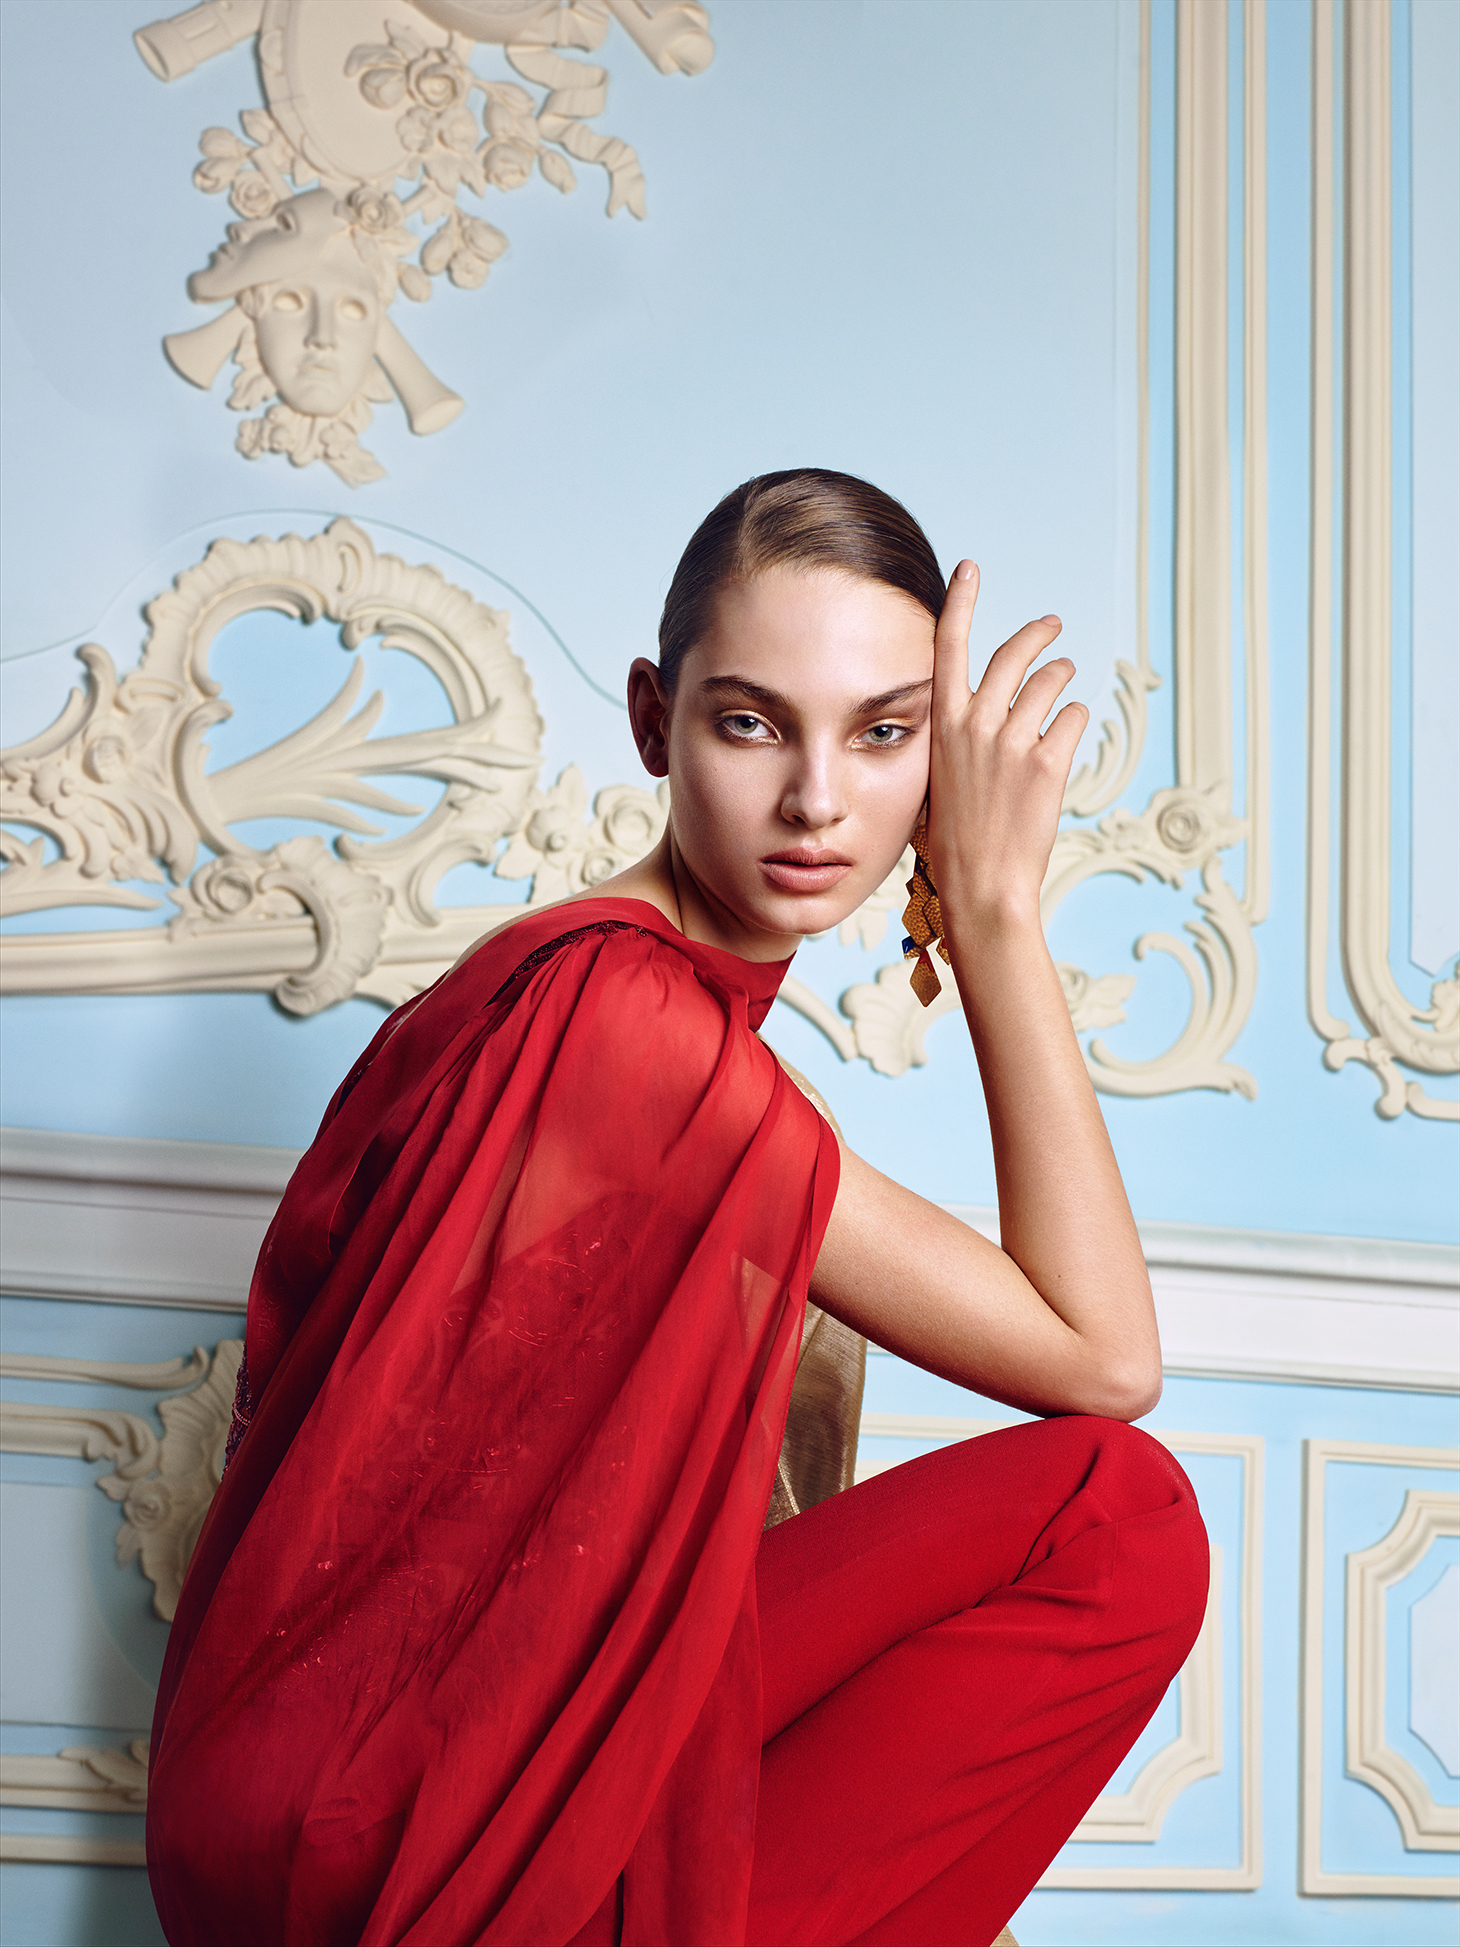 red dress the hermitage pablo patane vogue monteiro